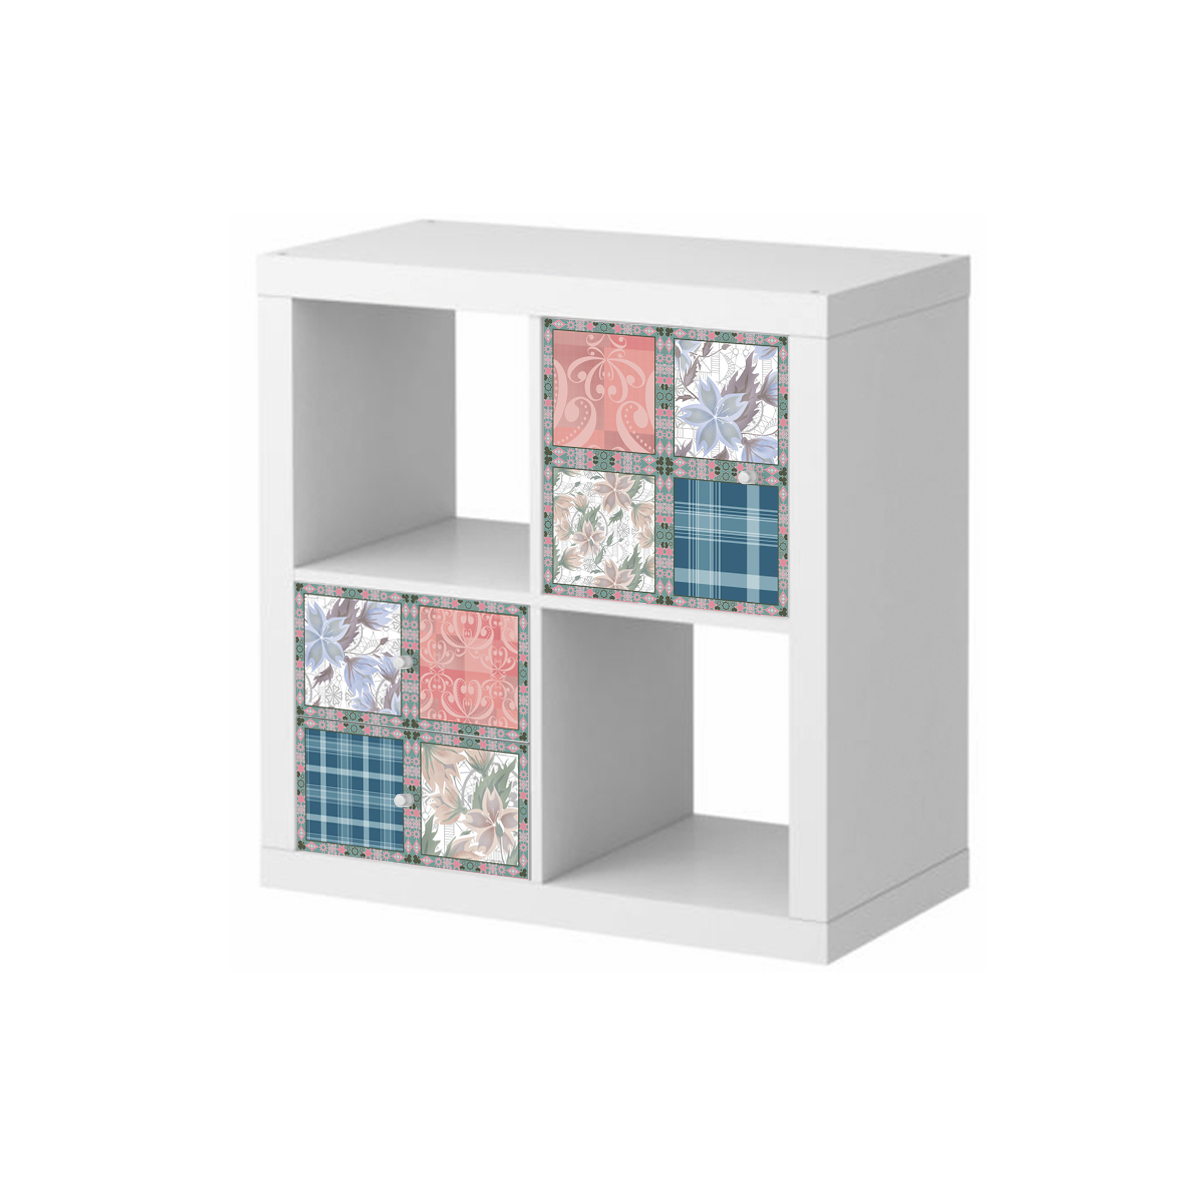 Meuble Sur Frigo Ikea sticker meubles ikea patchwork tendresse 1